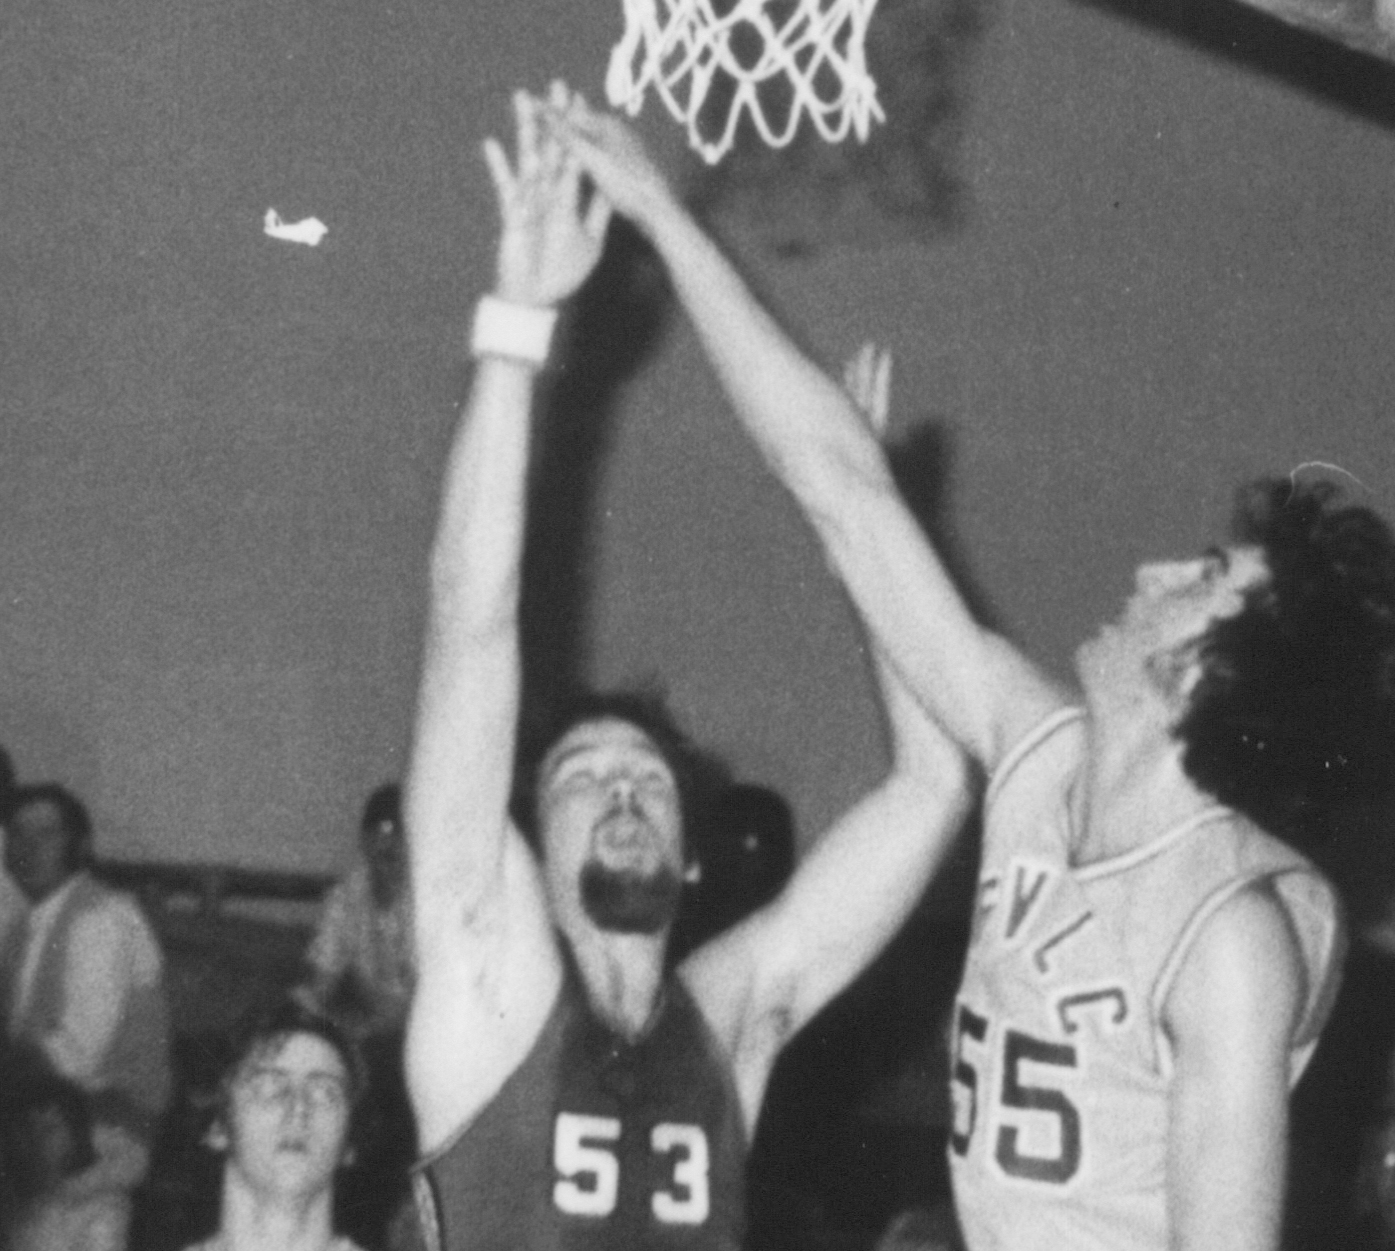 Bethany Lutheran College men's basketball game 1975-1976